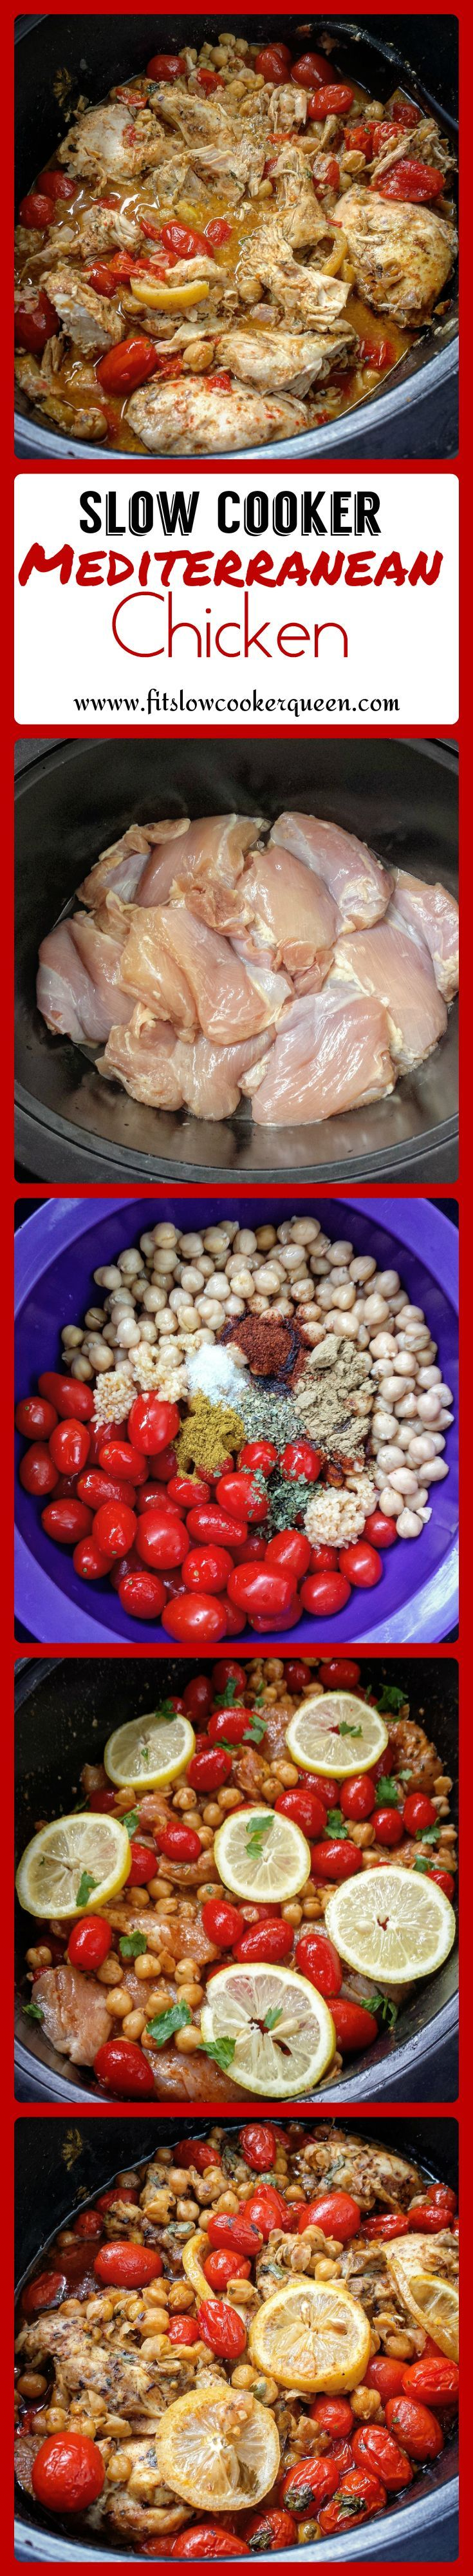 Mediterranean flavors enhance this easy, versatile slow cooker meal. Any cut of chicken can be used for this recipe and it can also be made in the oven. #crockpot #slowcooker